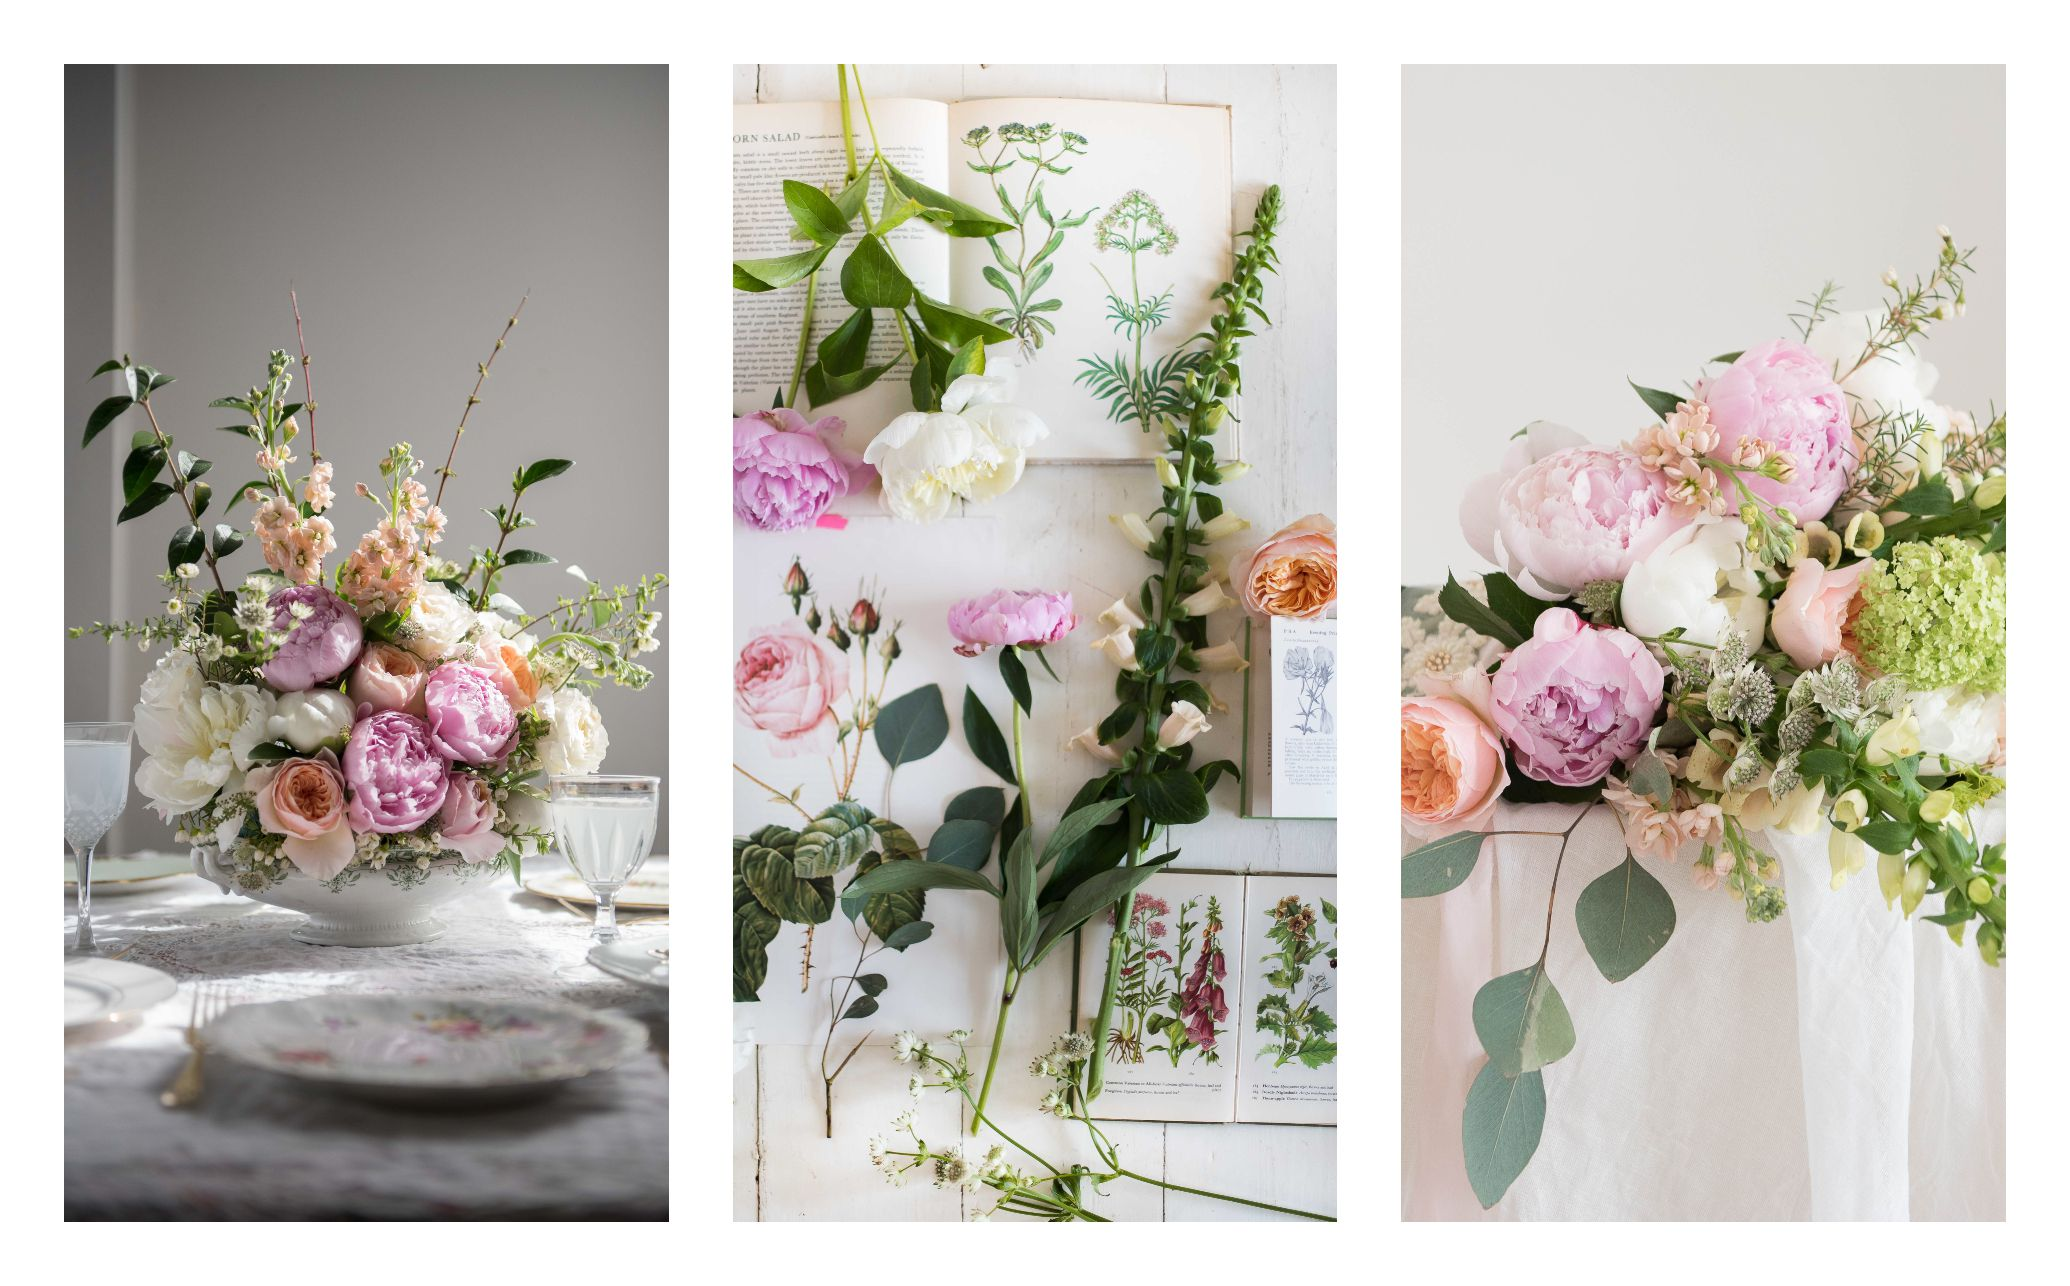 6 Pretty Ways To Decorate With Flowers - Easy Flower Arrangement Ideas